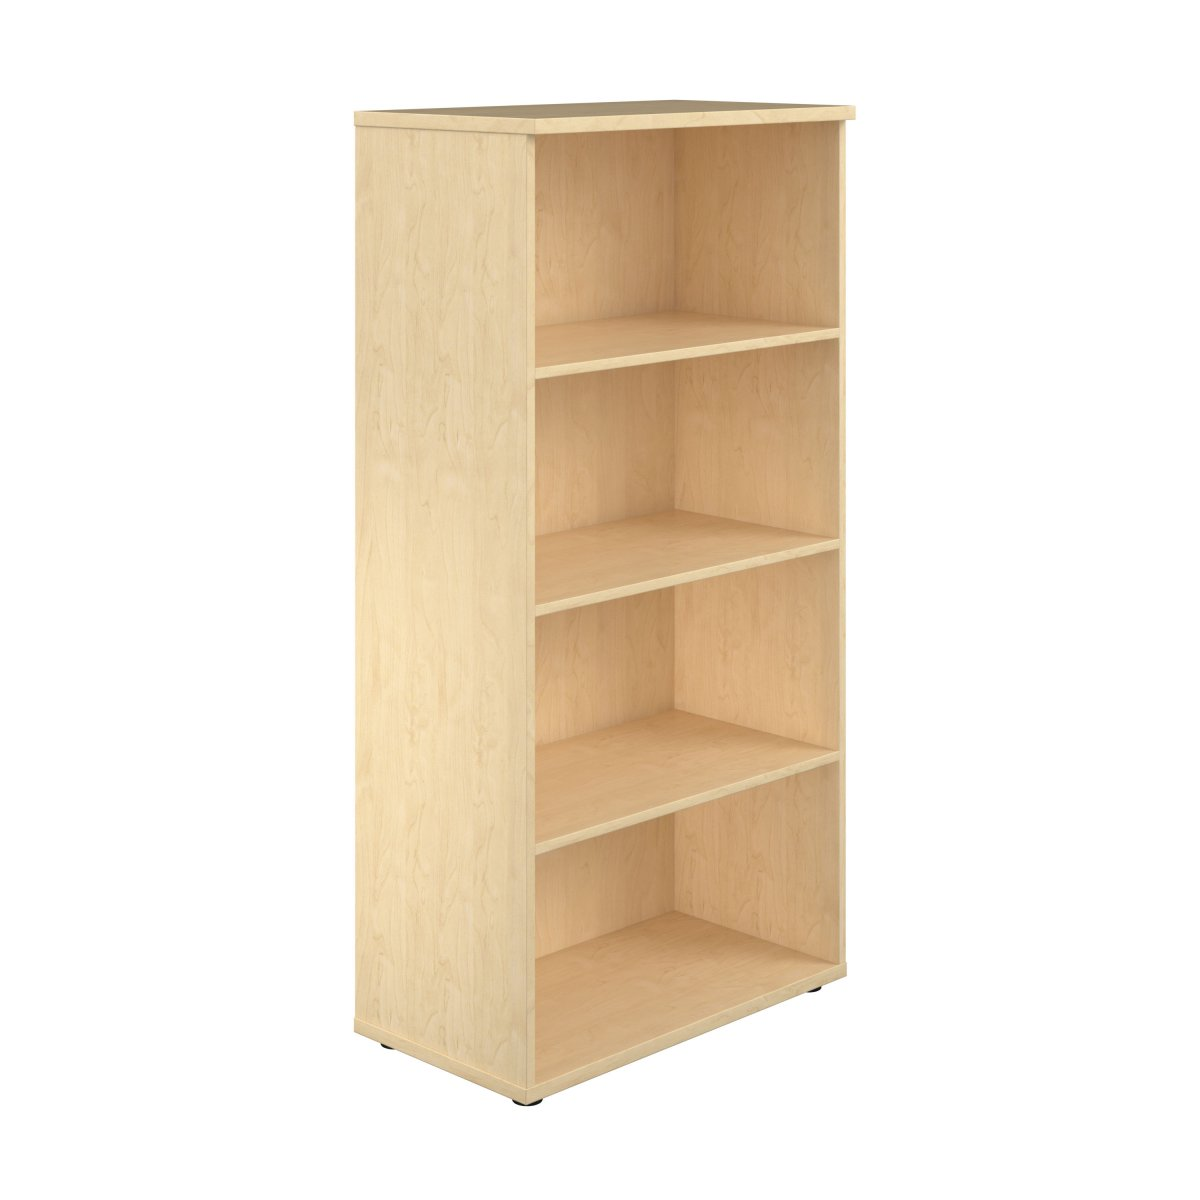 1600 Wooden Bookcase (450mm Deep) Maple